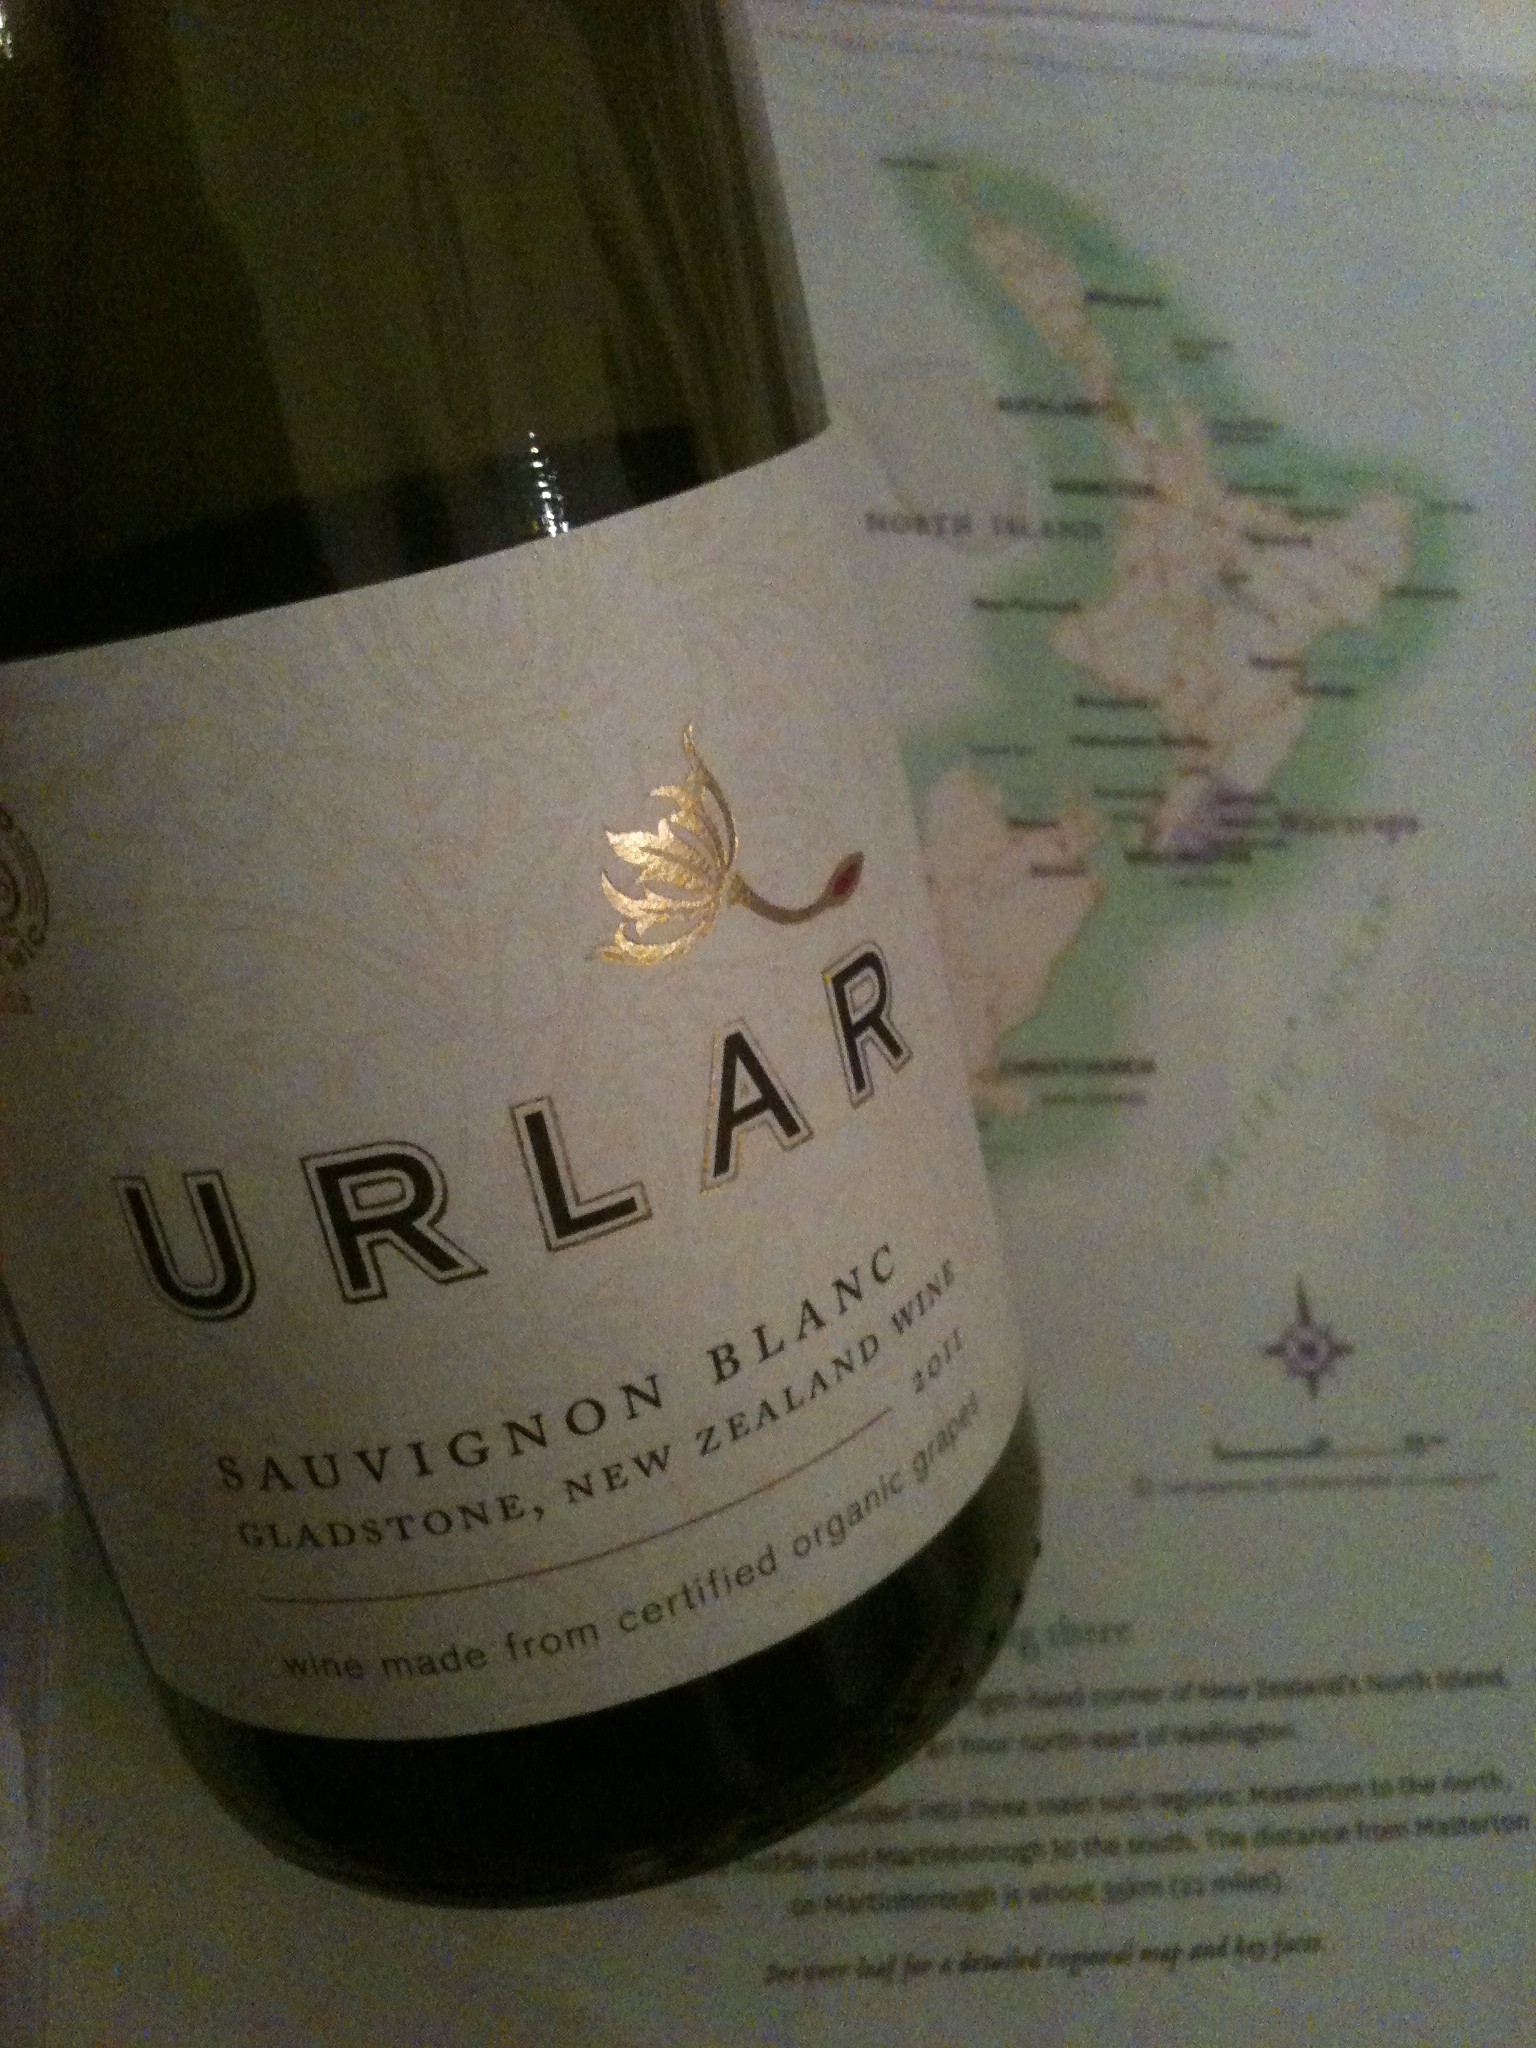 Delicious wine of New Zealand